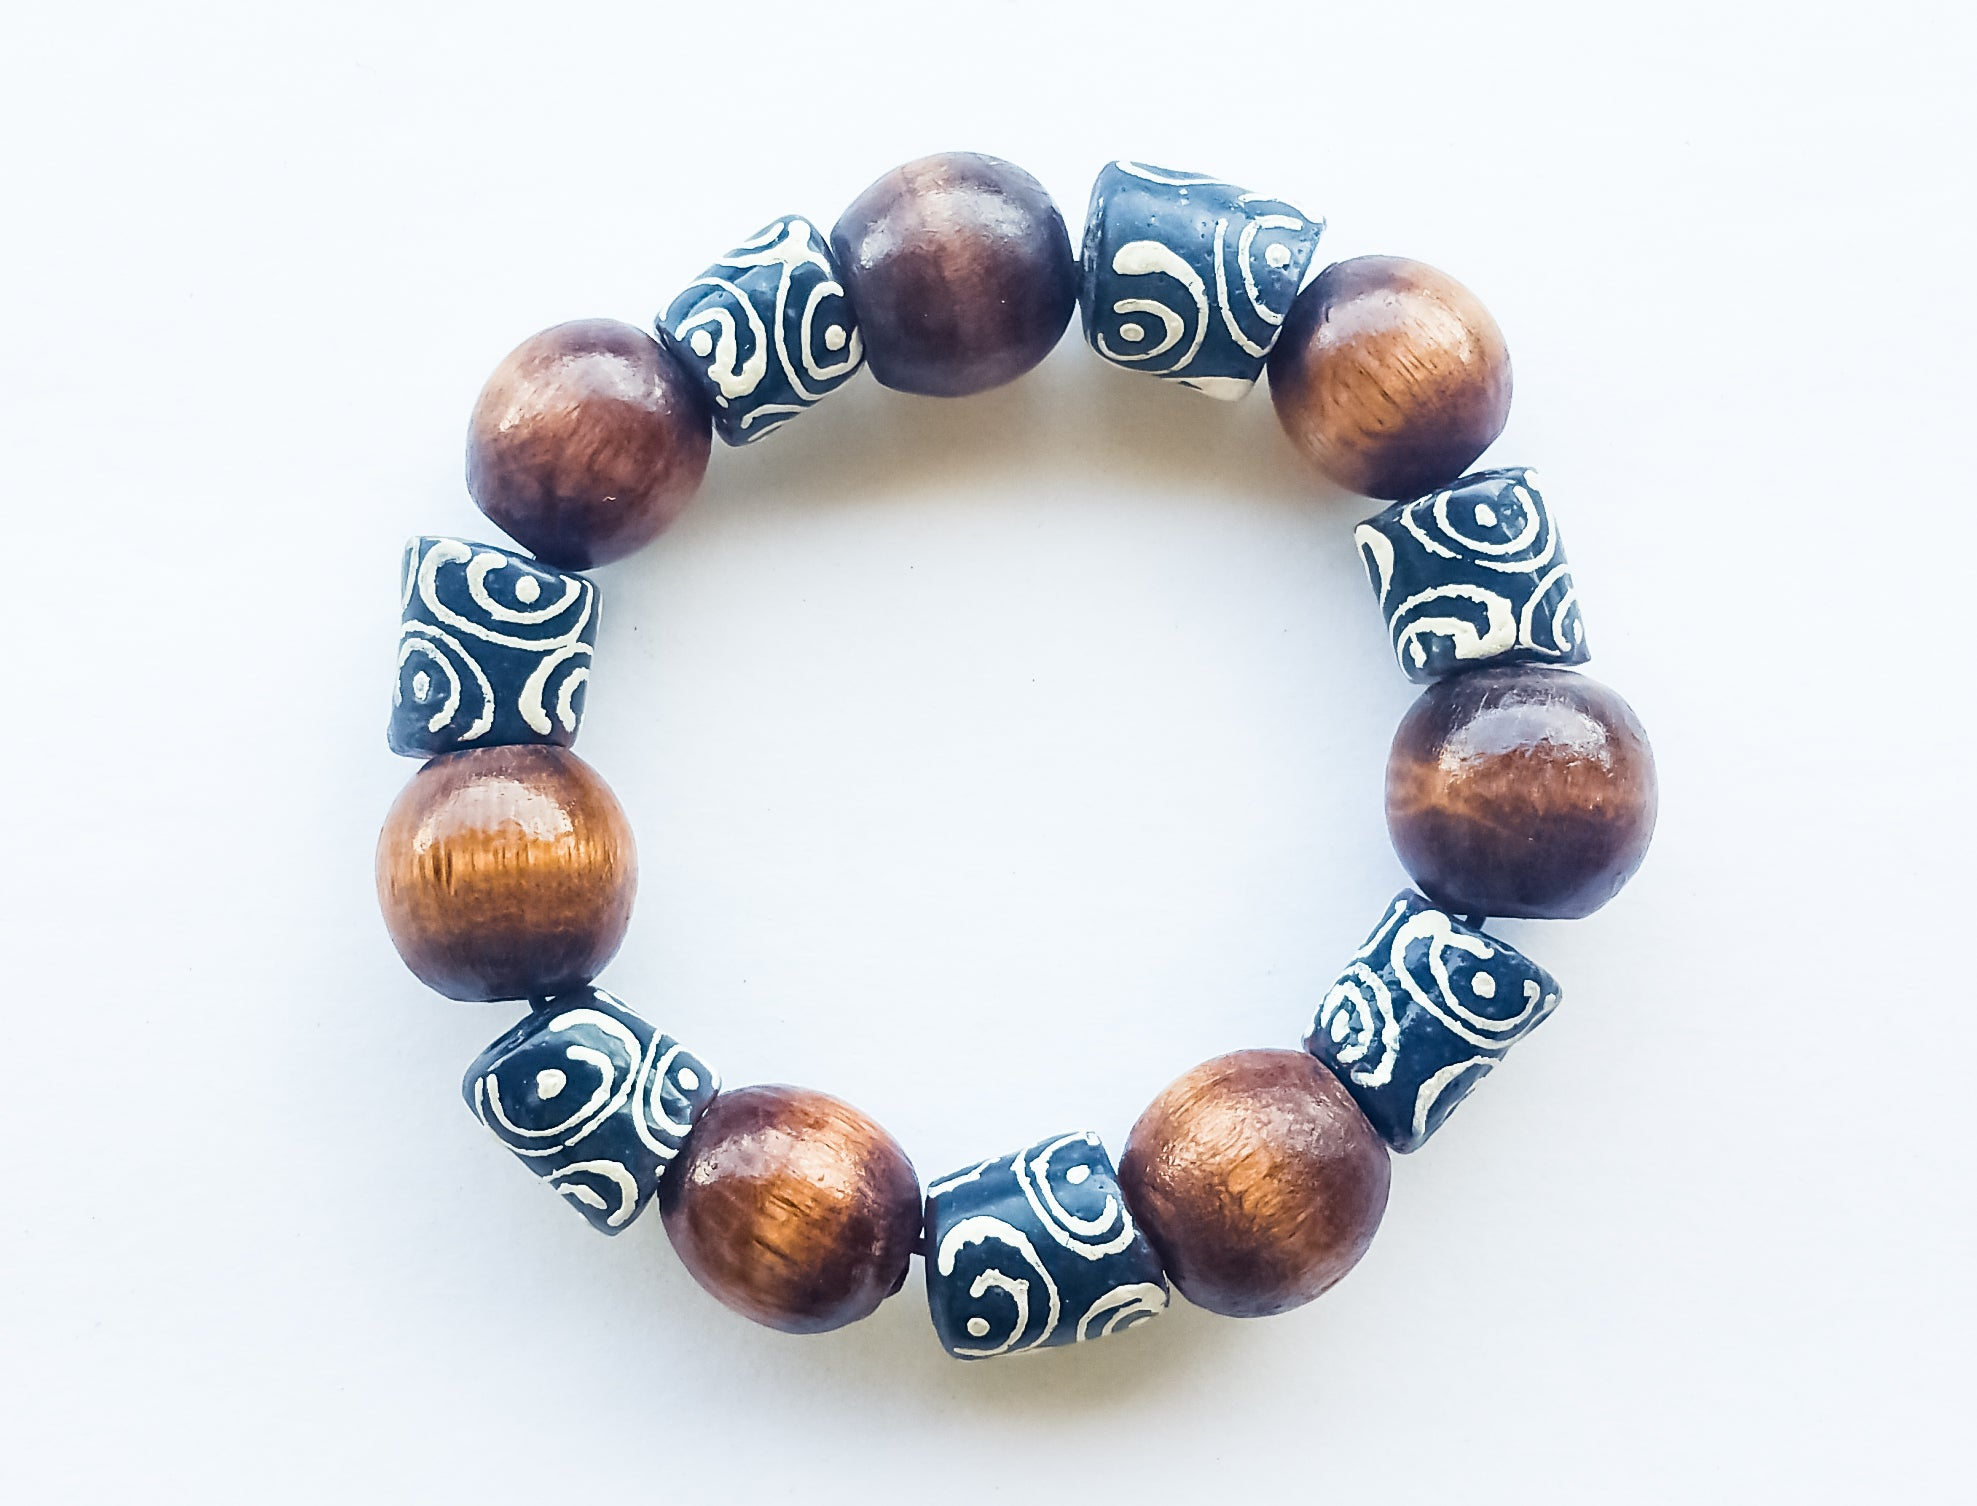 8mm Black And White & Wood African Trade Bead Bracelet